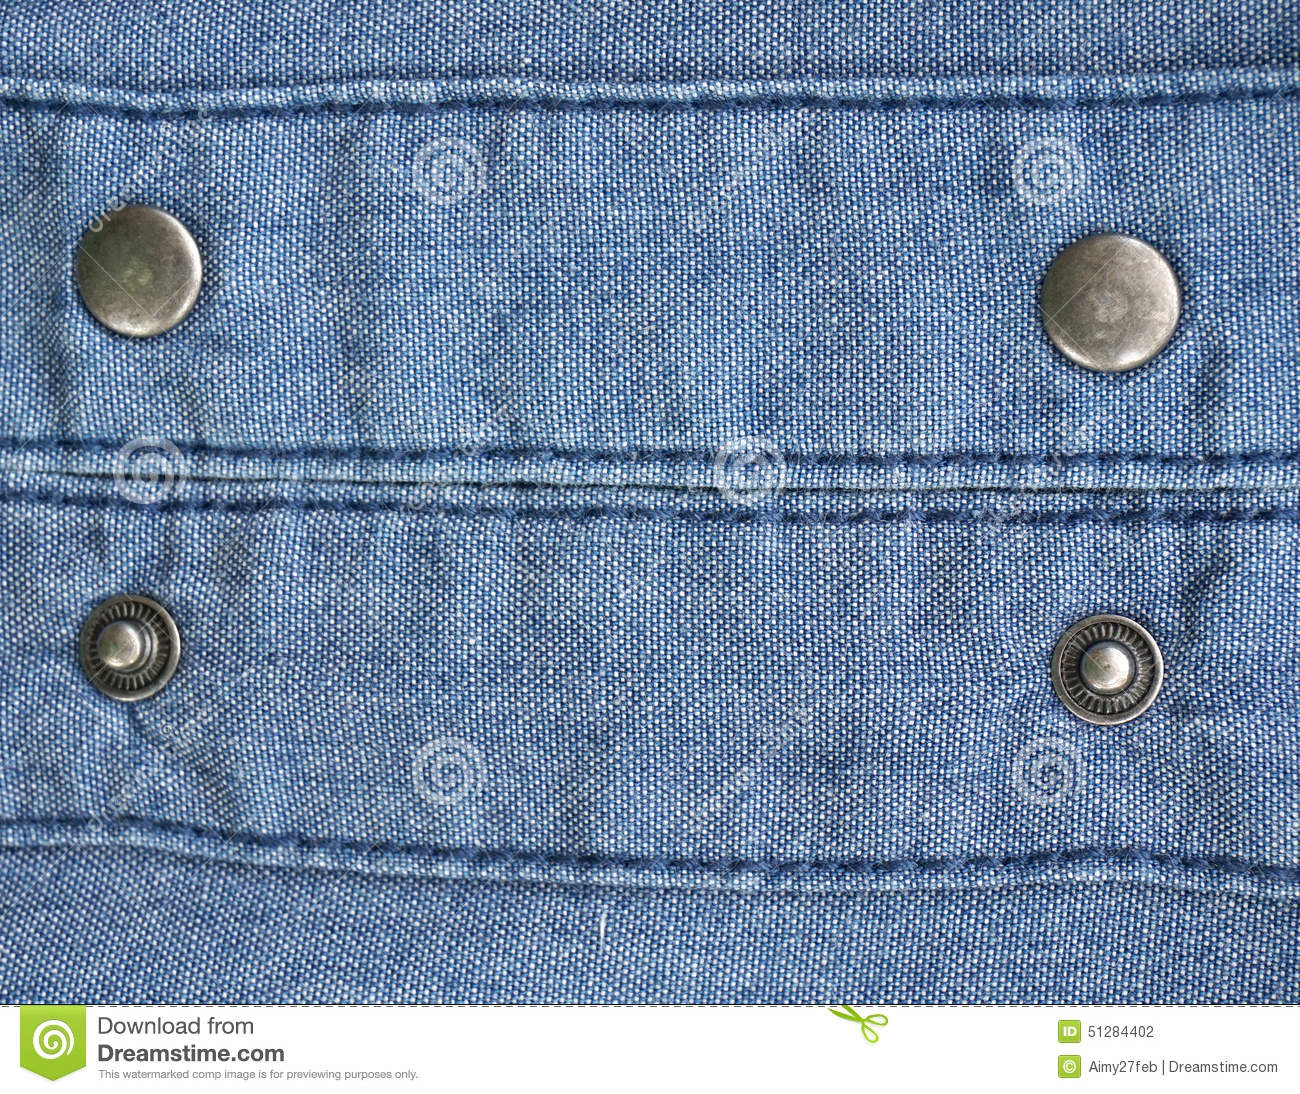 Shappy 50 Sets Metal Jeans Buttons Denim Replacement Buttons Tack Snap Buttons with Rivets and Storage Box for Jackets Jeans, Bronze and Silver. by Shappy. $ $ 7 89 Prime. FREE Shipping on eligible orders. In Stock. 3 out of 5 stars HL 10Pcs Metal Replacement Jeans Buttons Kit.